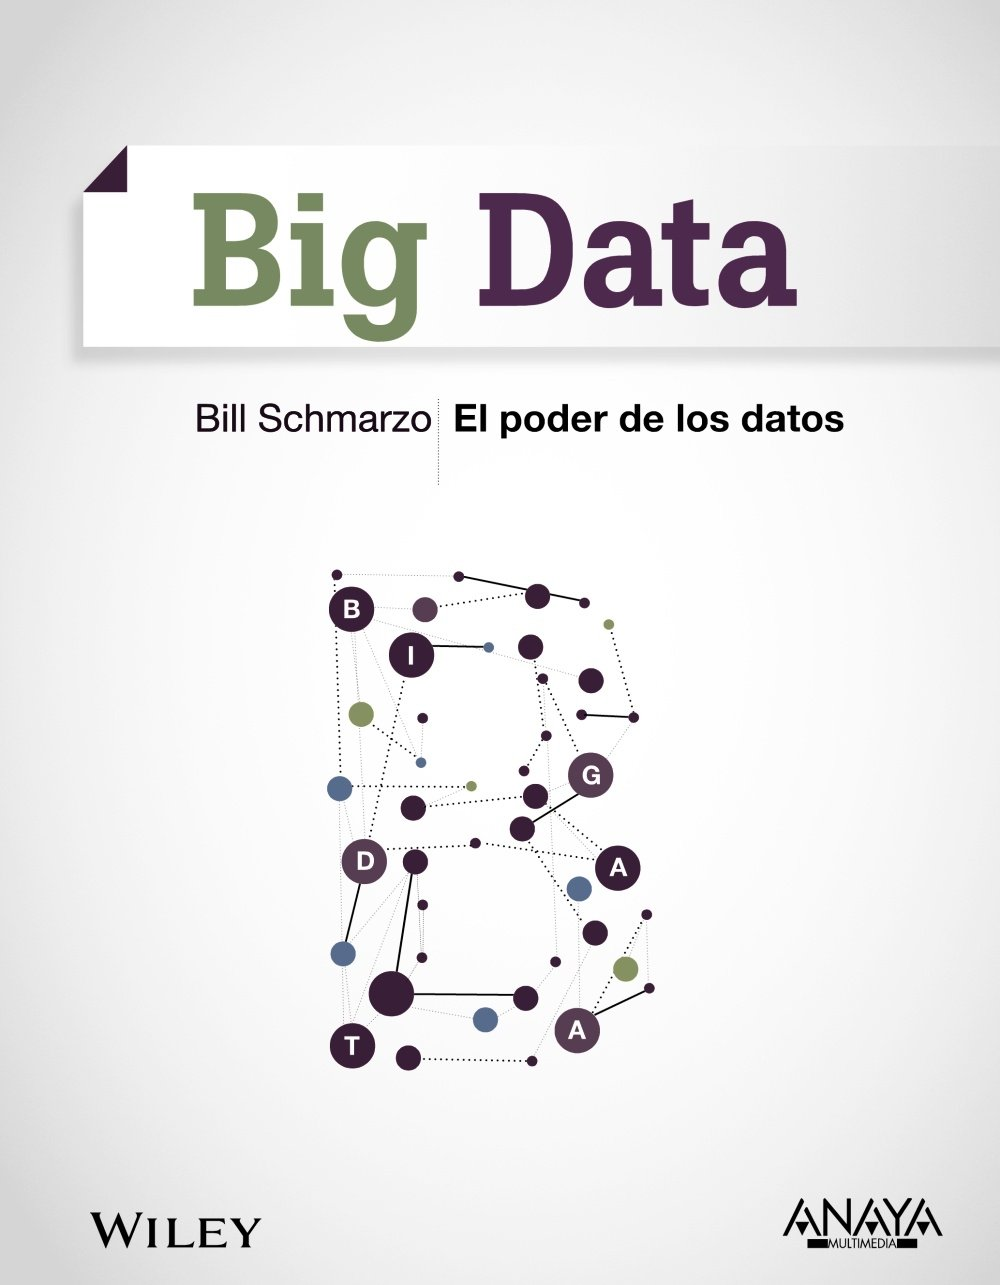 Big Data. El poder de los datos (Títulos Especiales) Tapa blanda – 2 jun 2014 Bill Schmarzo Anaya 8441535760 Relational databases